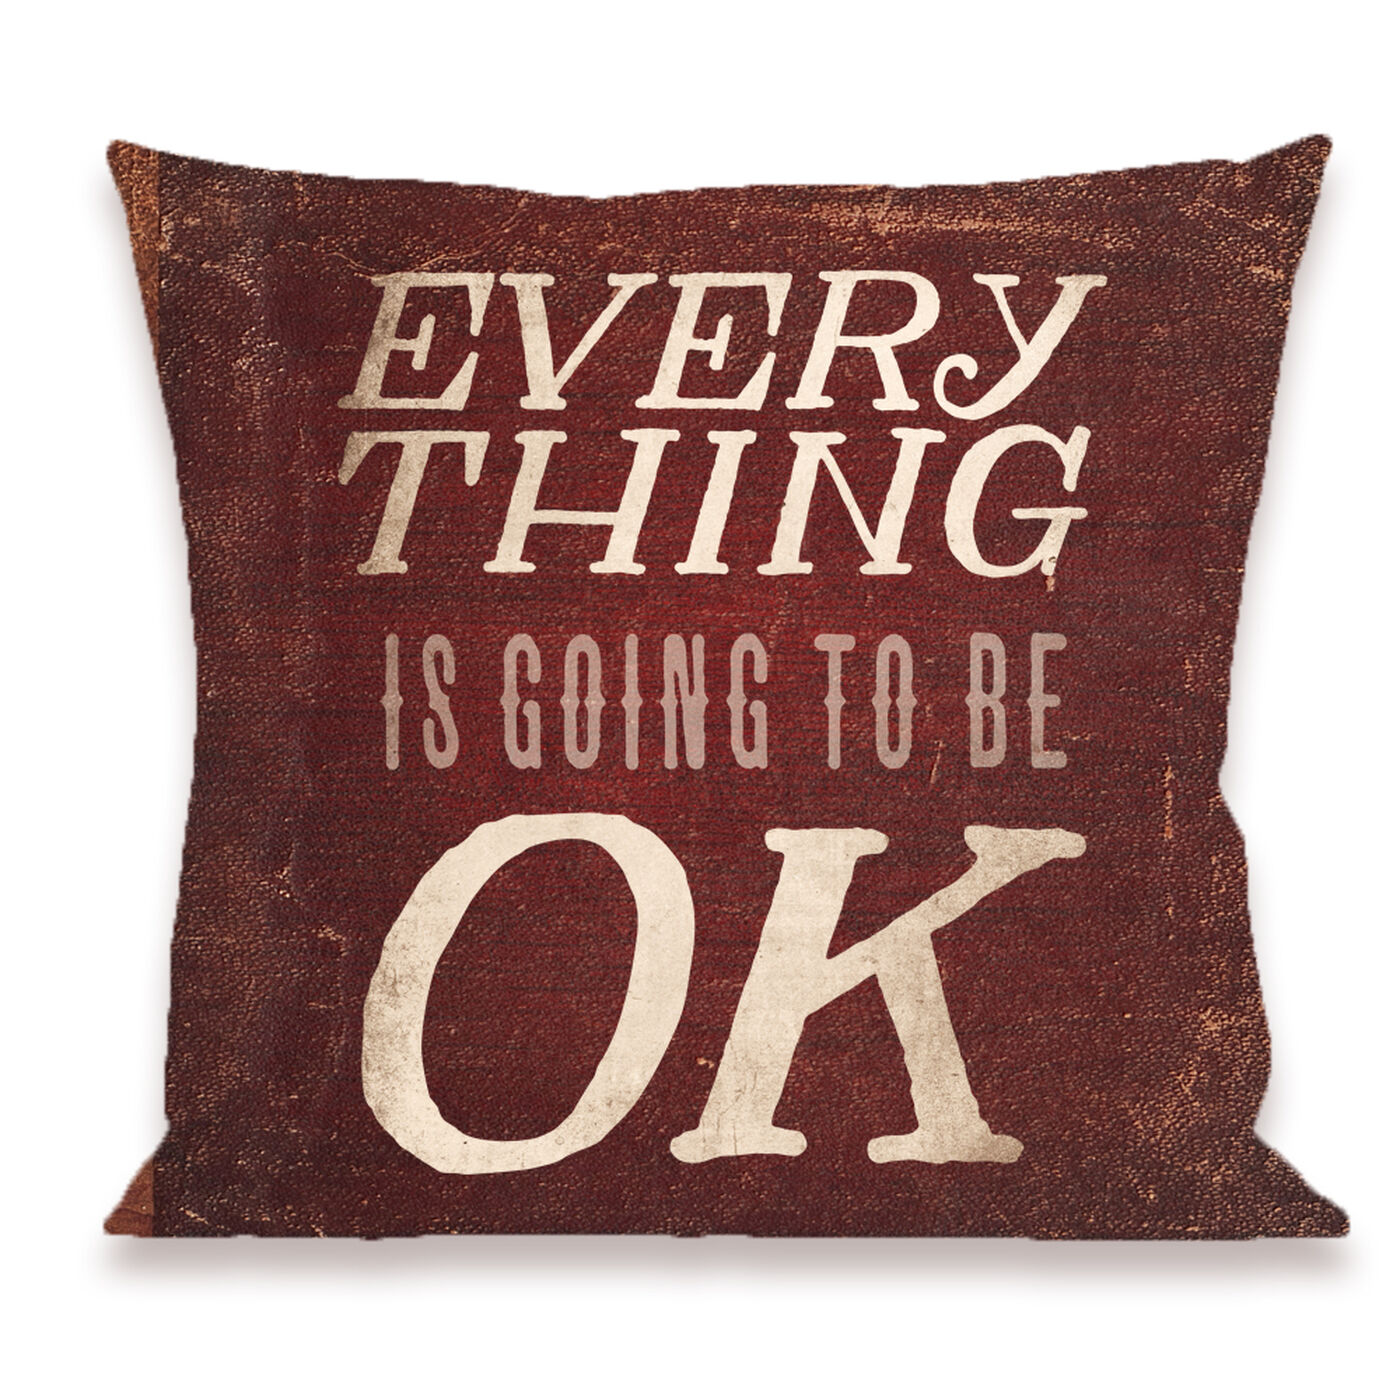 Everything Is Okay Pillow